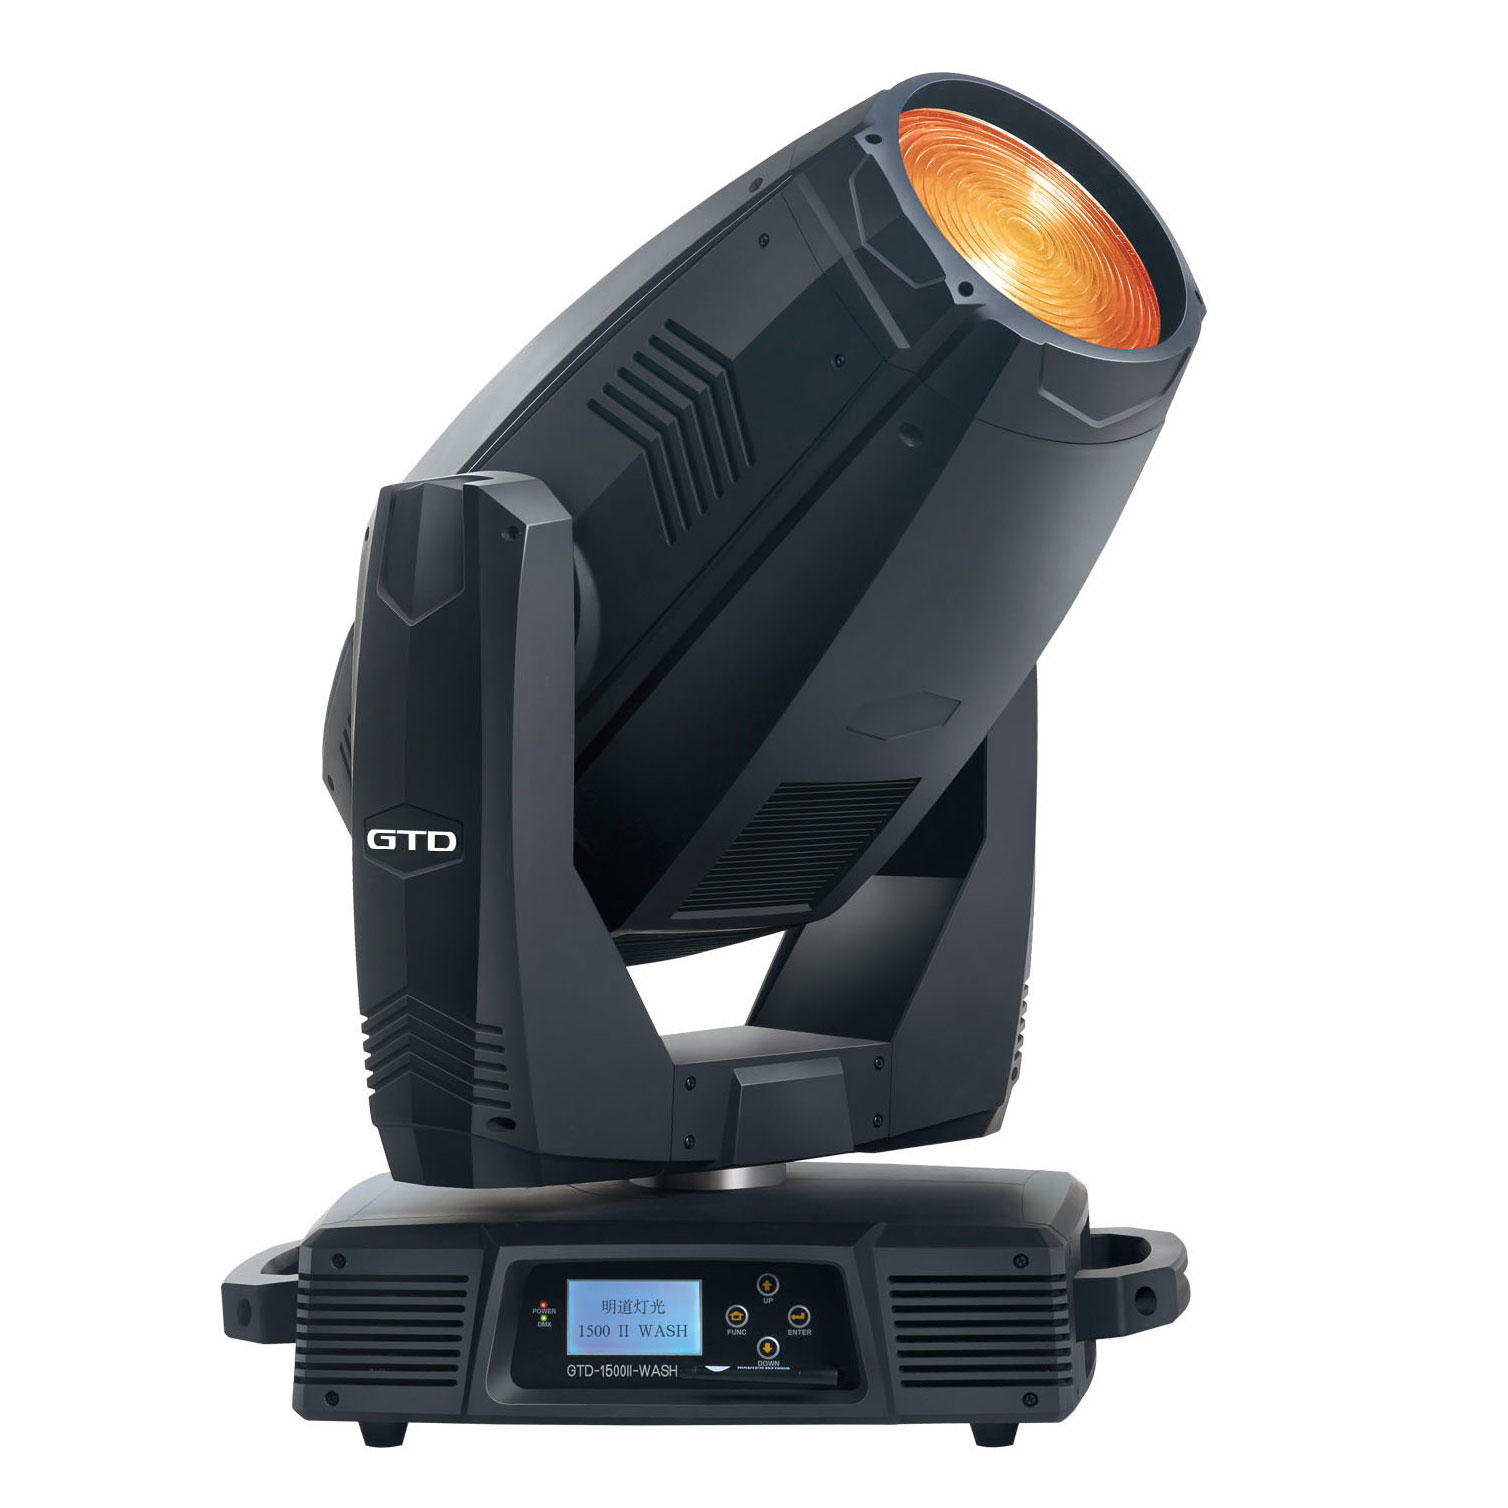 Lm600 ii profile moveing head discharge light